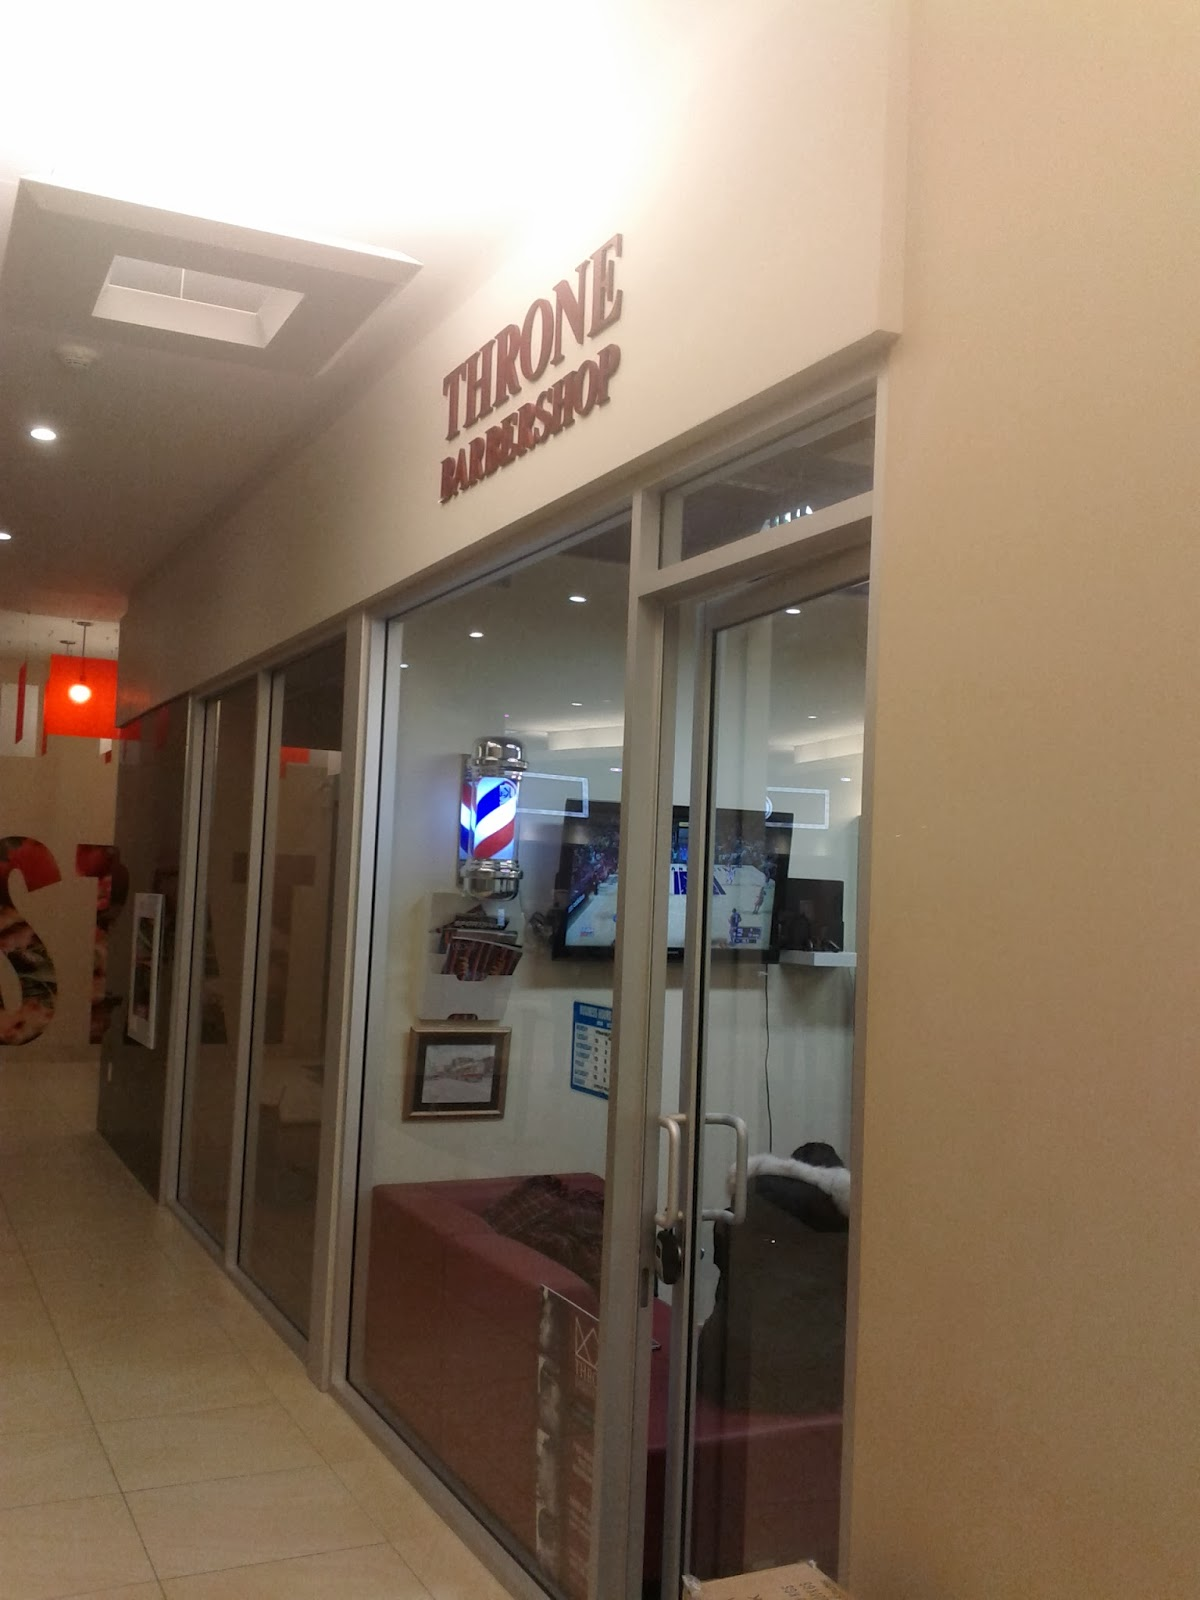 Travel Toronto Now: Throne Barber Shop open in Aura building shops